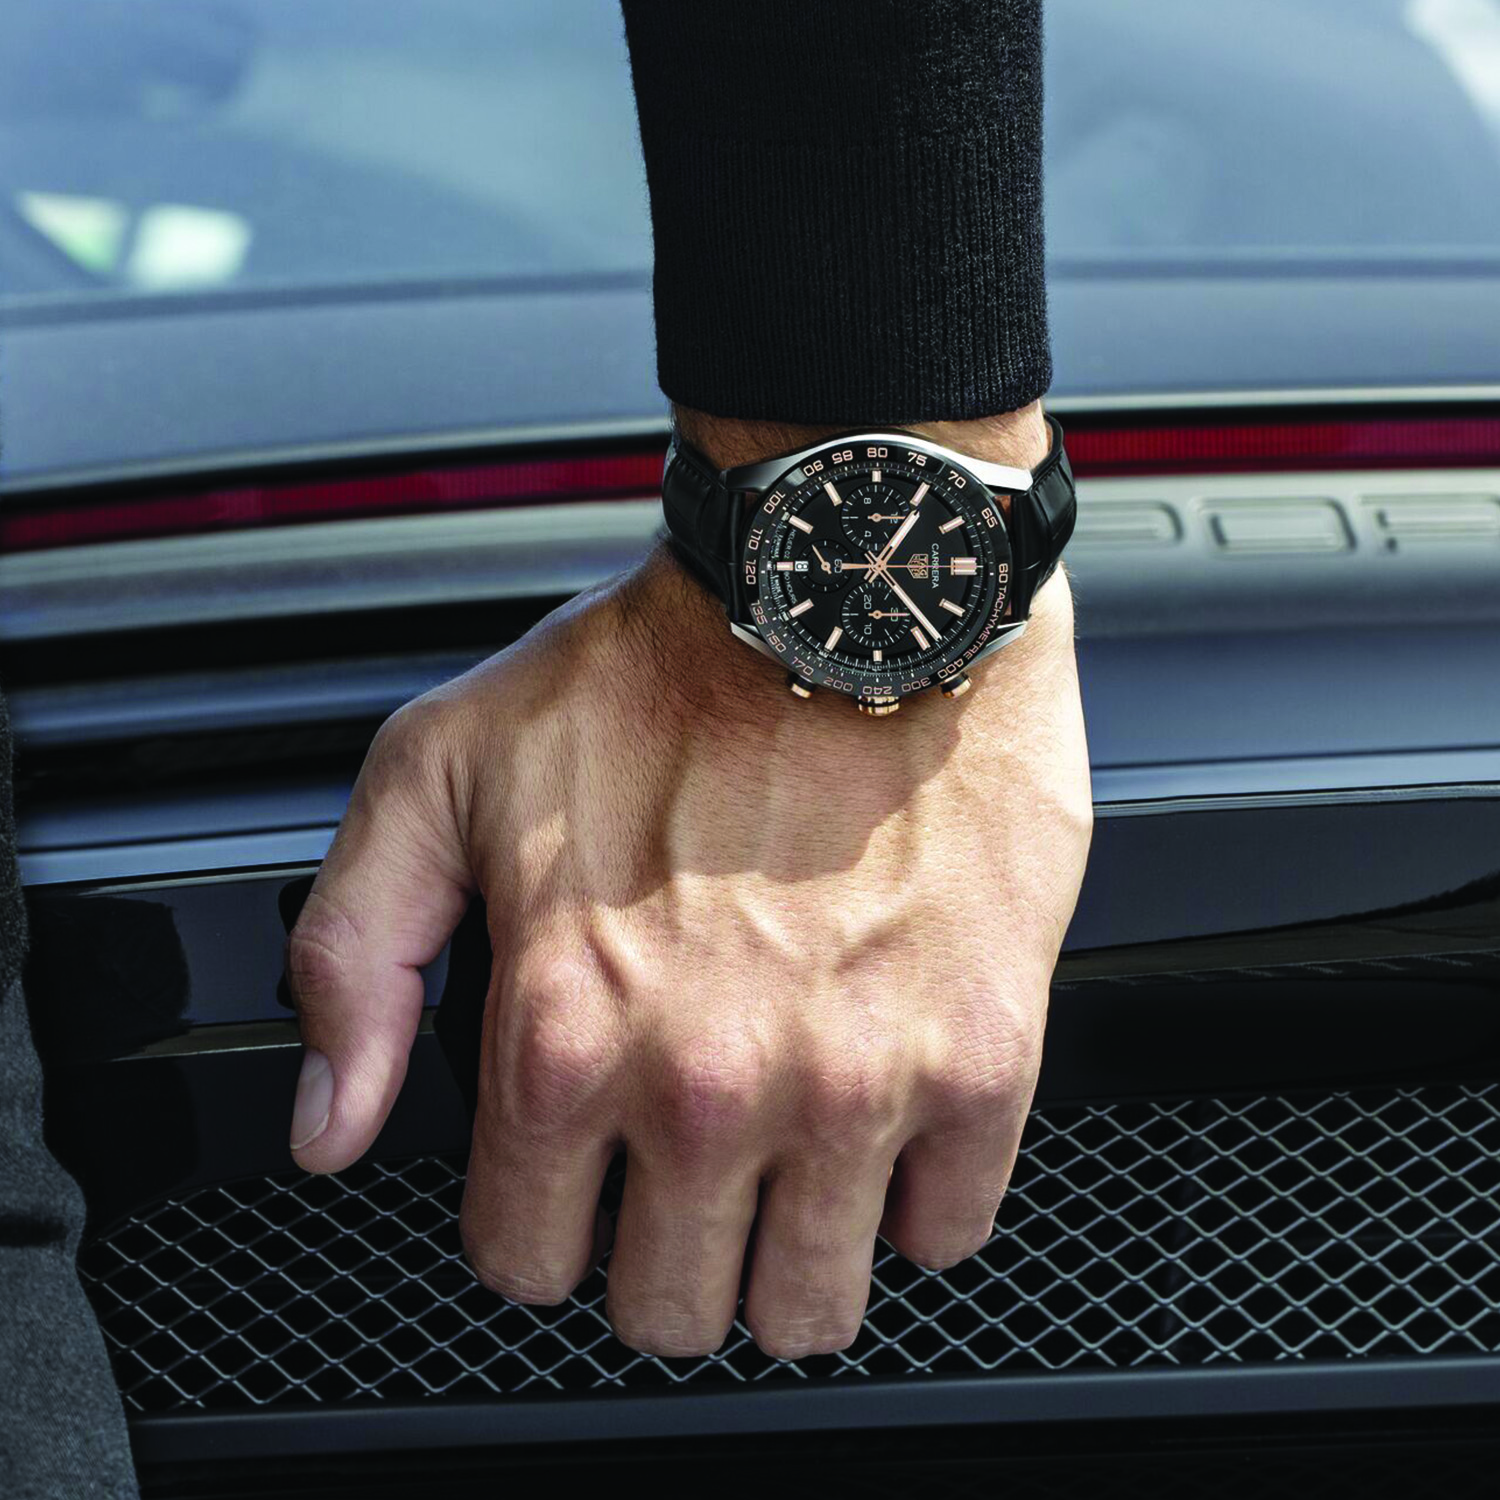 tag-heuer_0008_web-2000px-cbn2a5a.fc6481_lifestyle